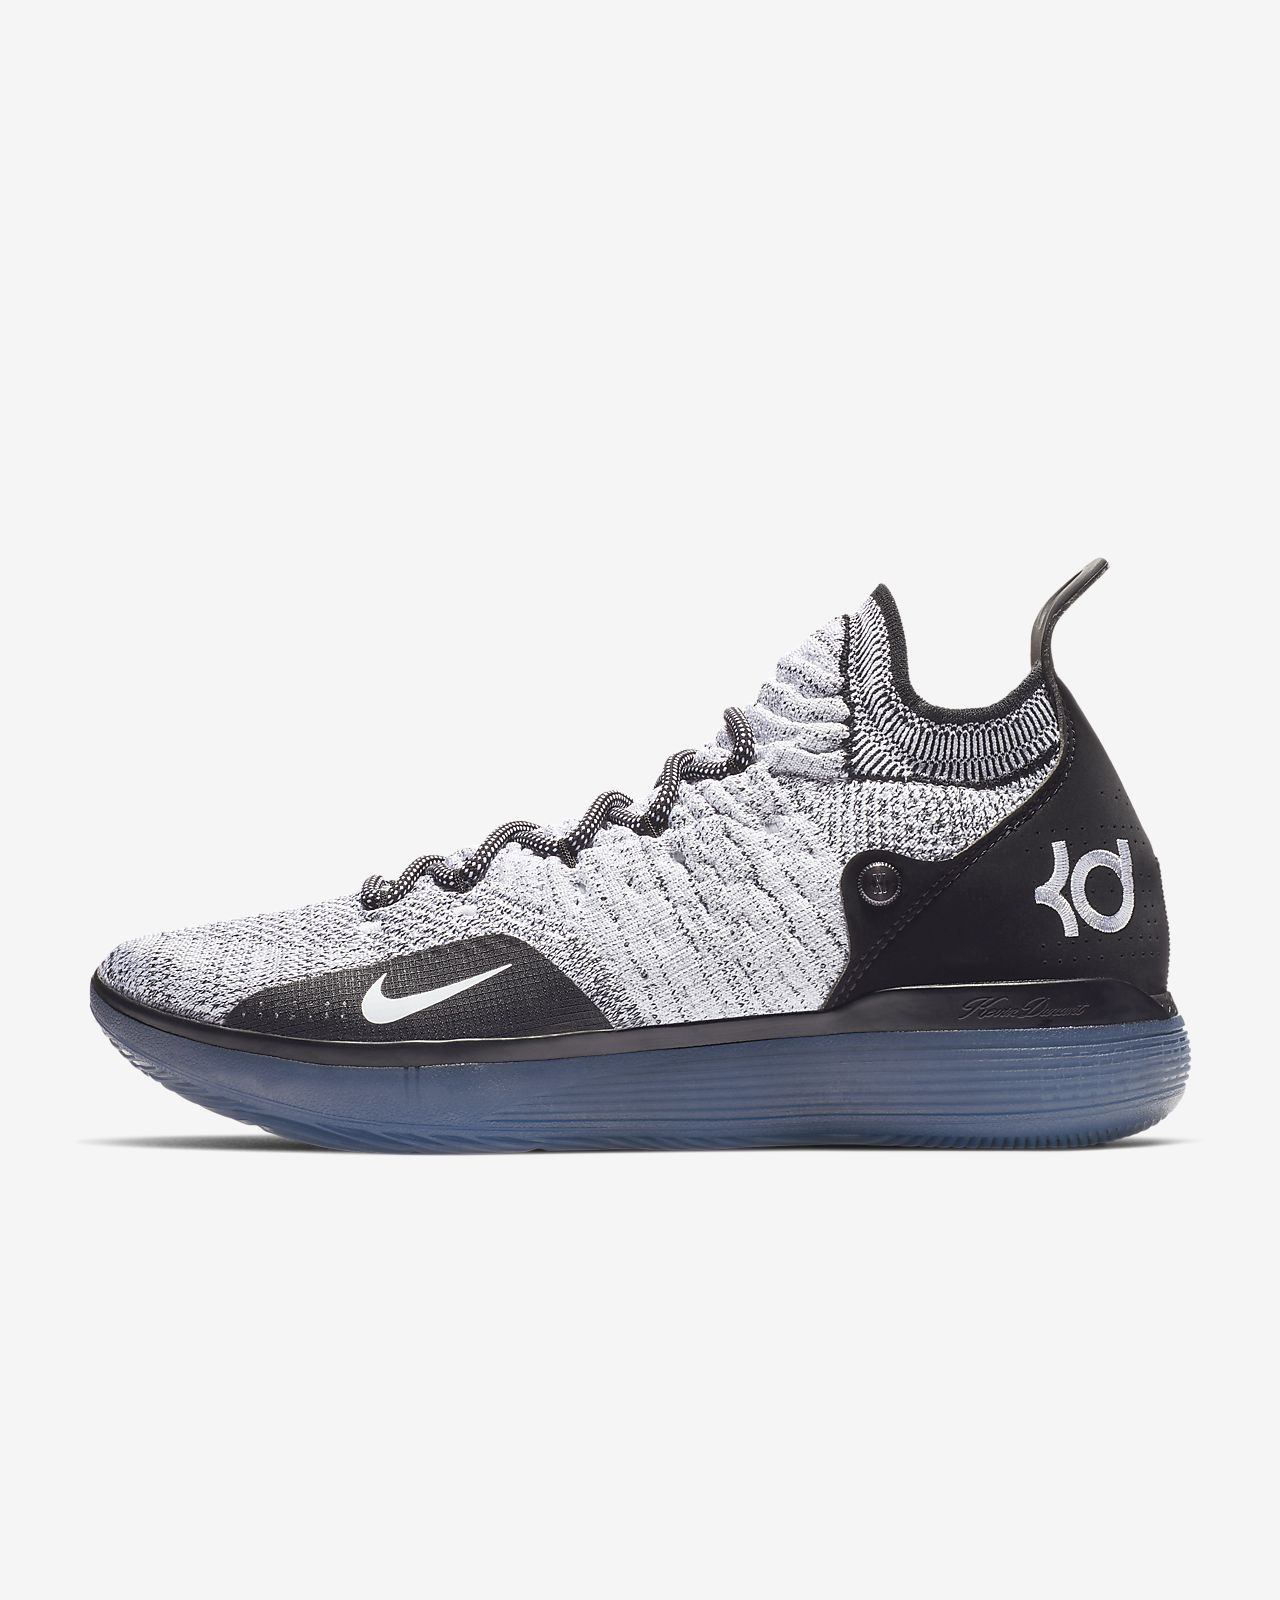 Tina influenza Iluminar  nike kd 11 size 6 Kevin Durant shoes on sale